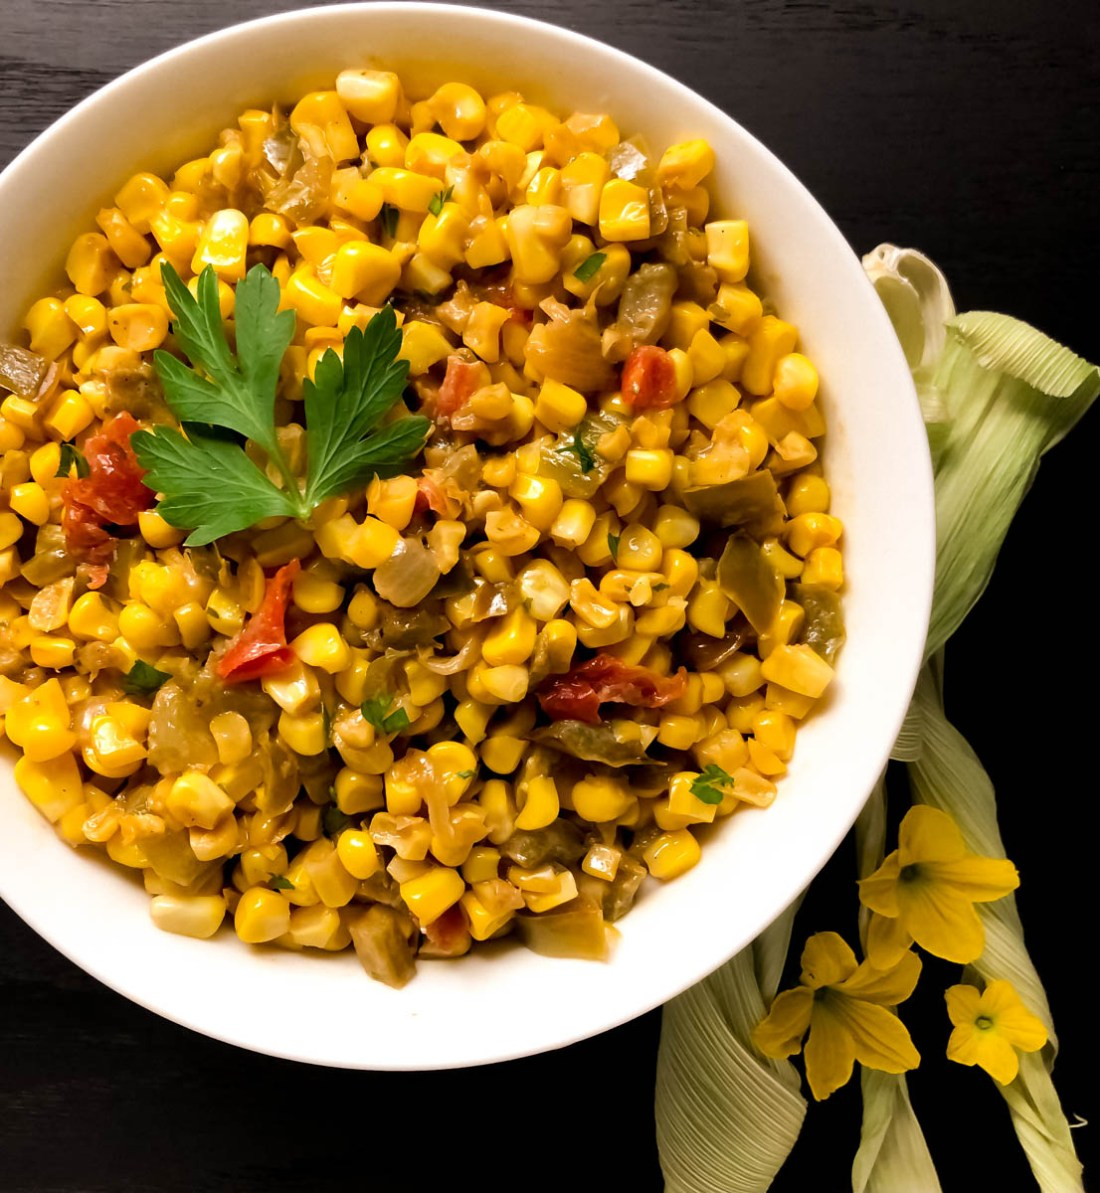 A round white bowl filled with spicy skillet corn maque choux.